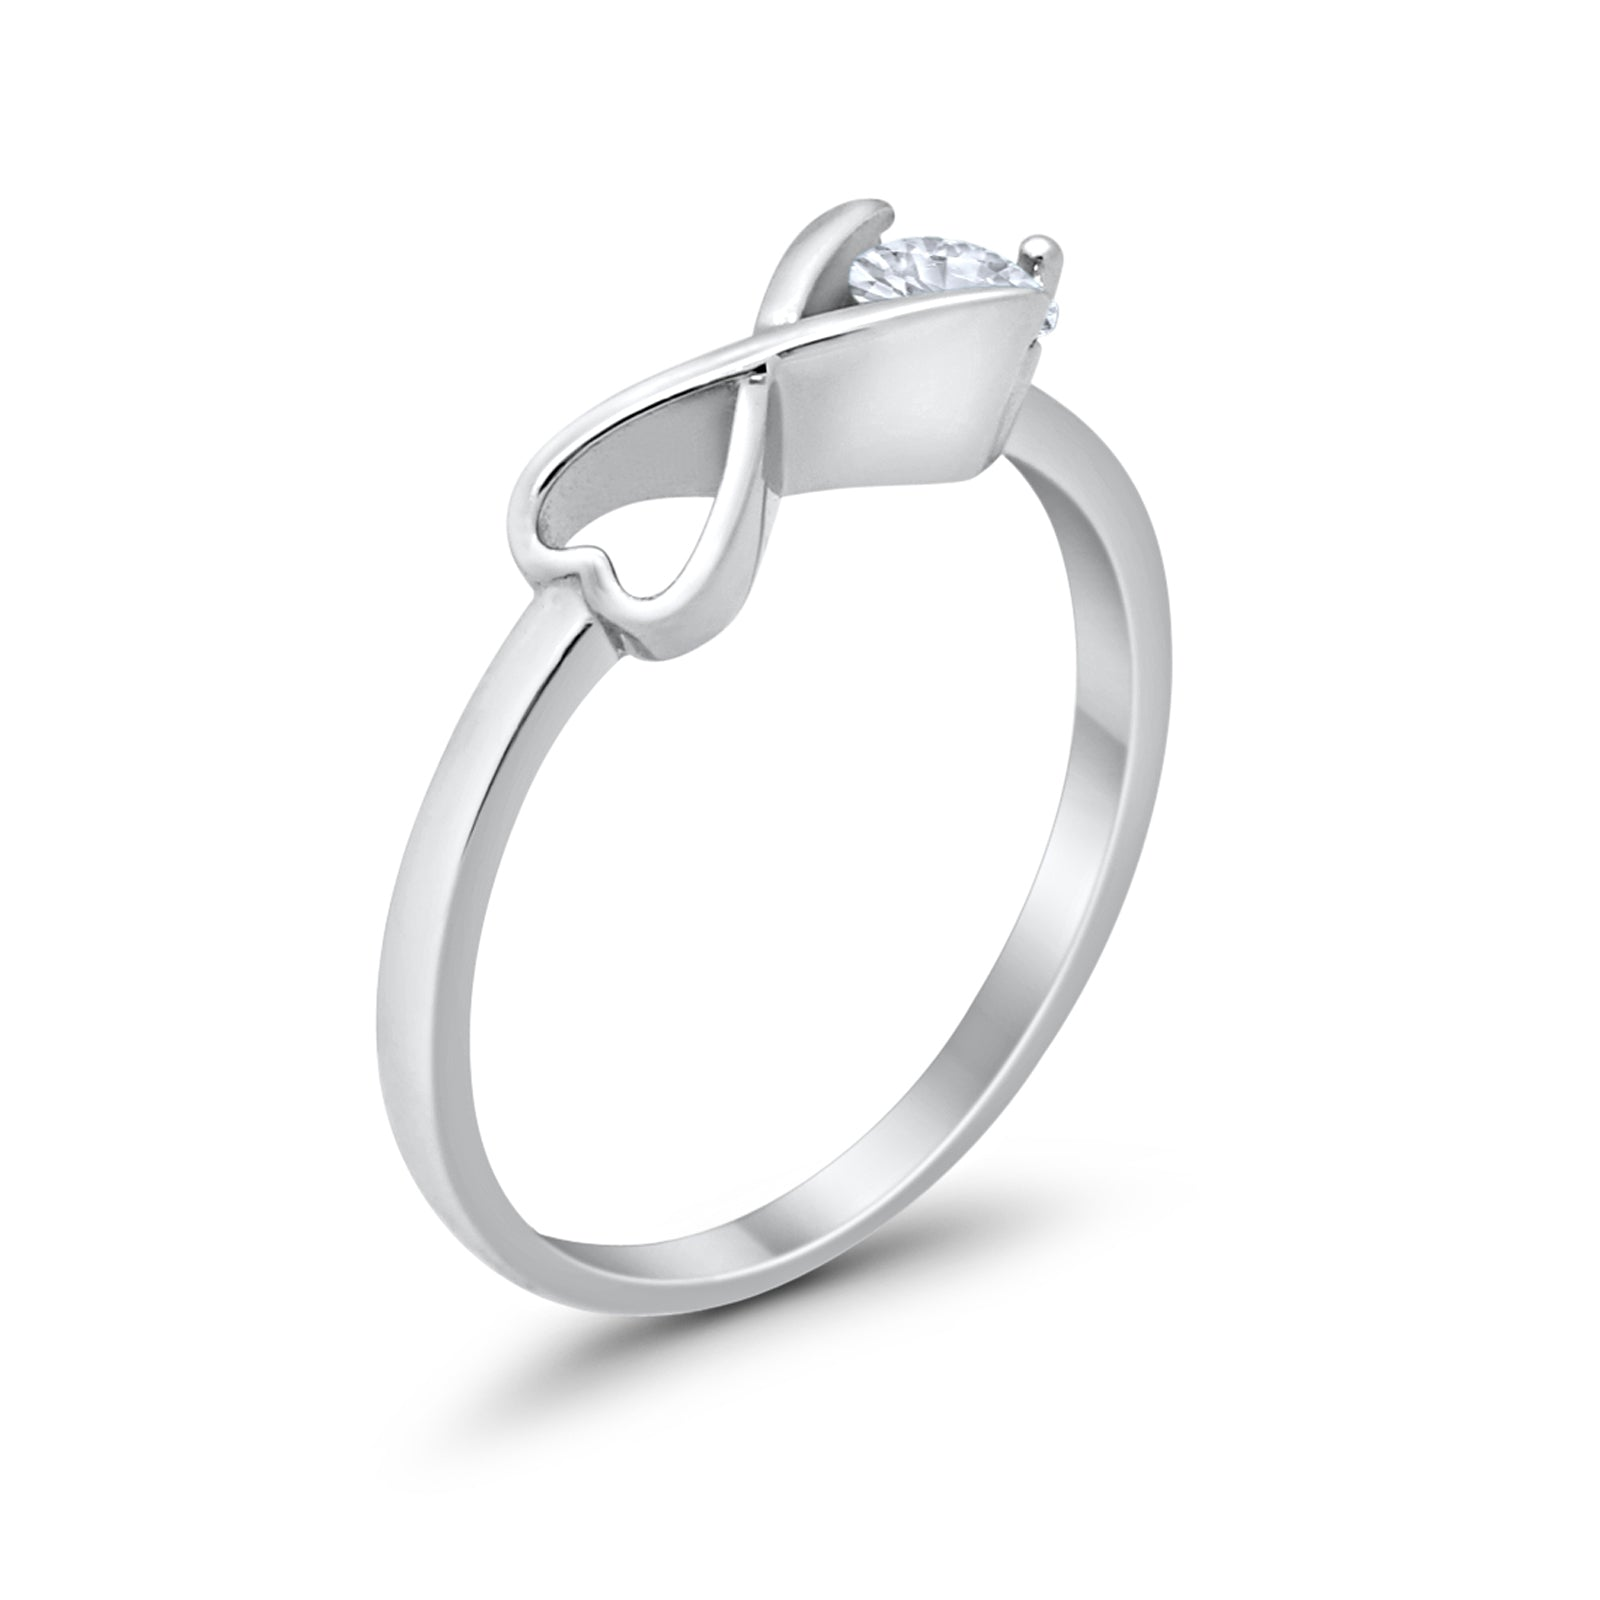 Petite Dainty Infinity Heart Ring Round Simulated Aquamarine CZ 925 Sterling Silver